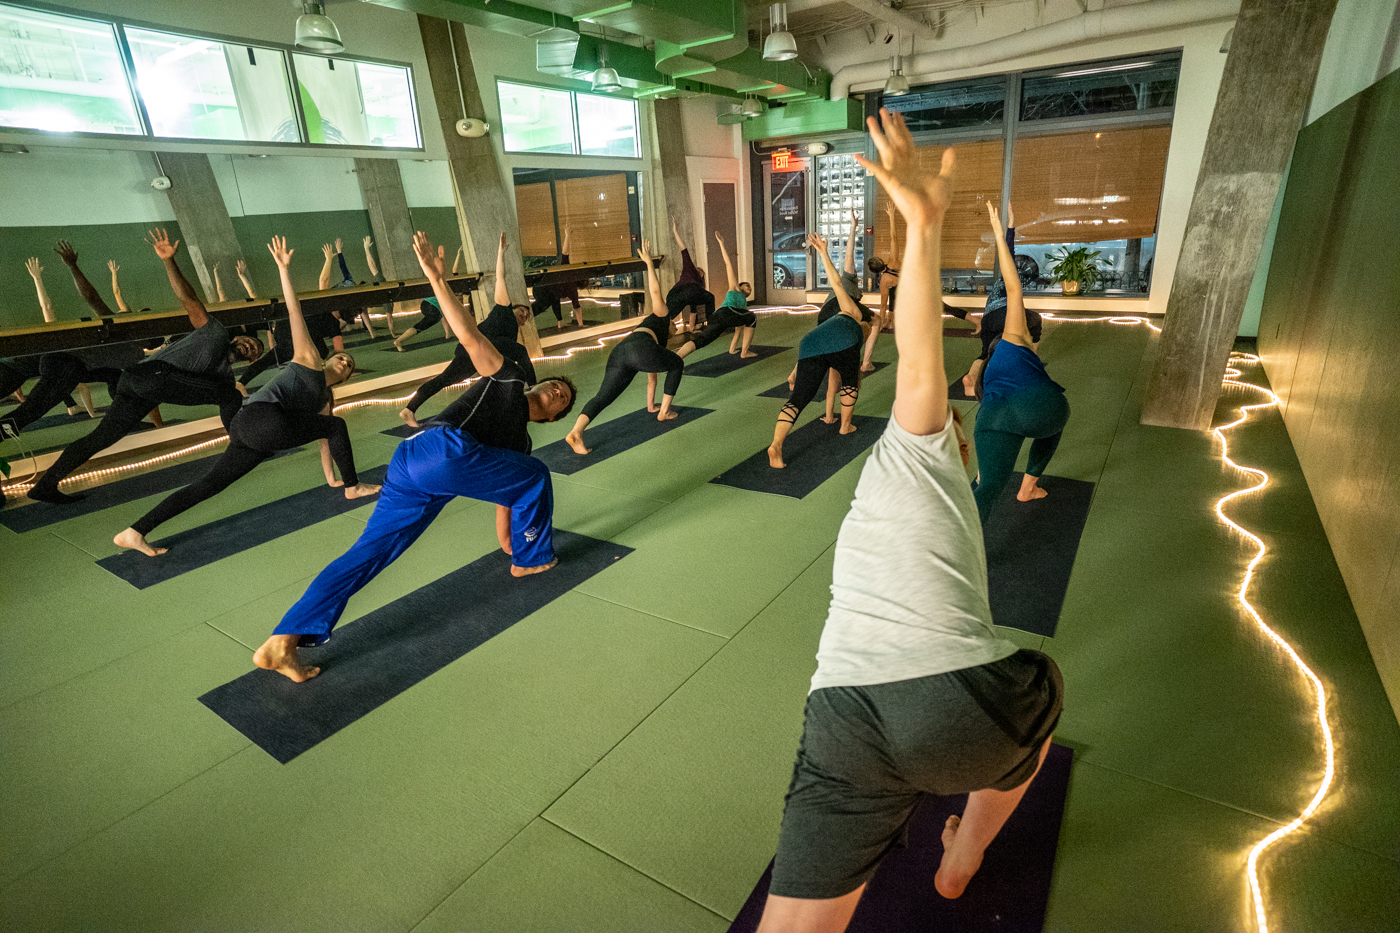 Yoga class in Arlington Virginia